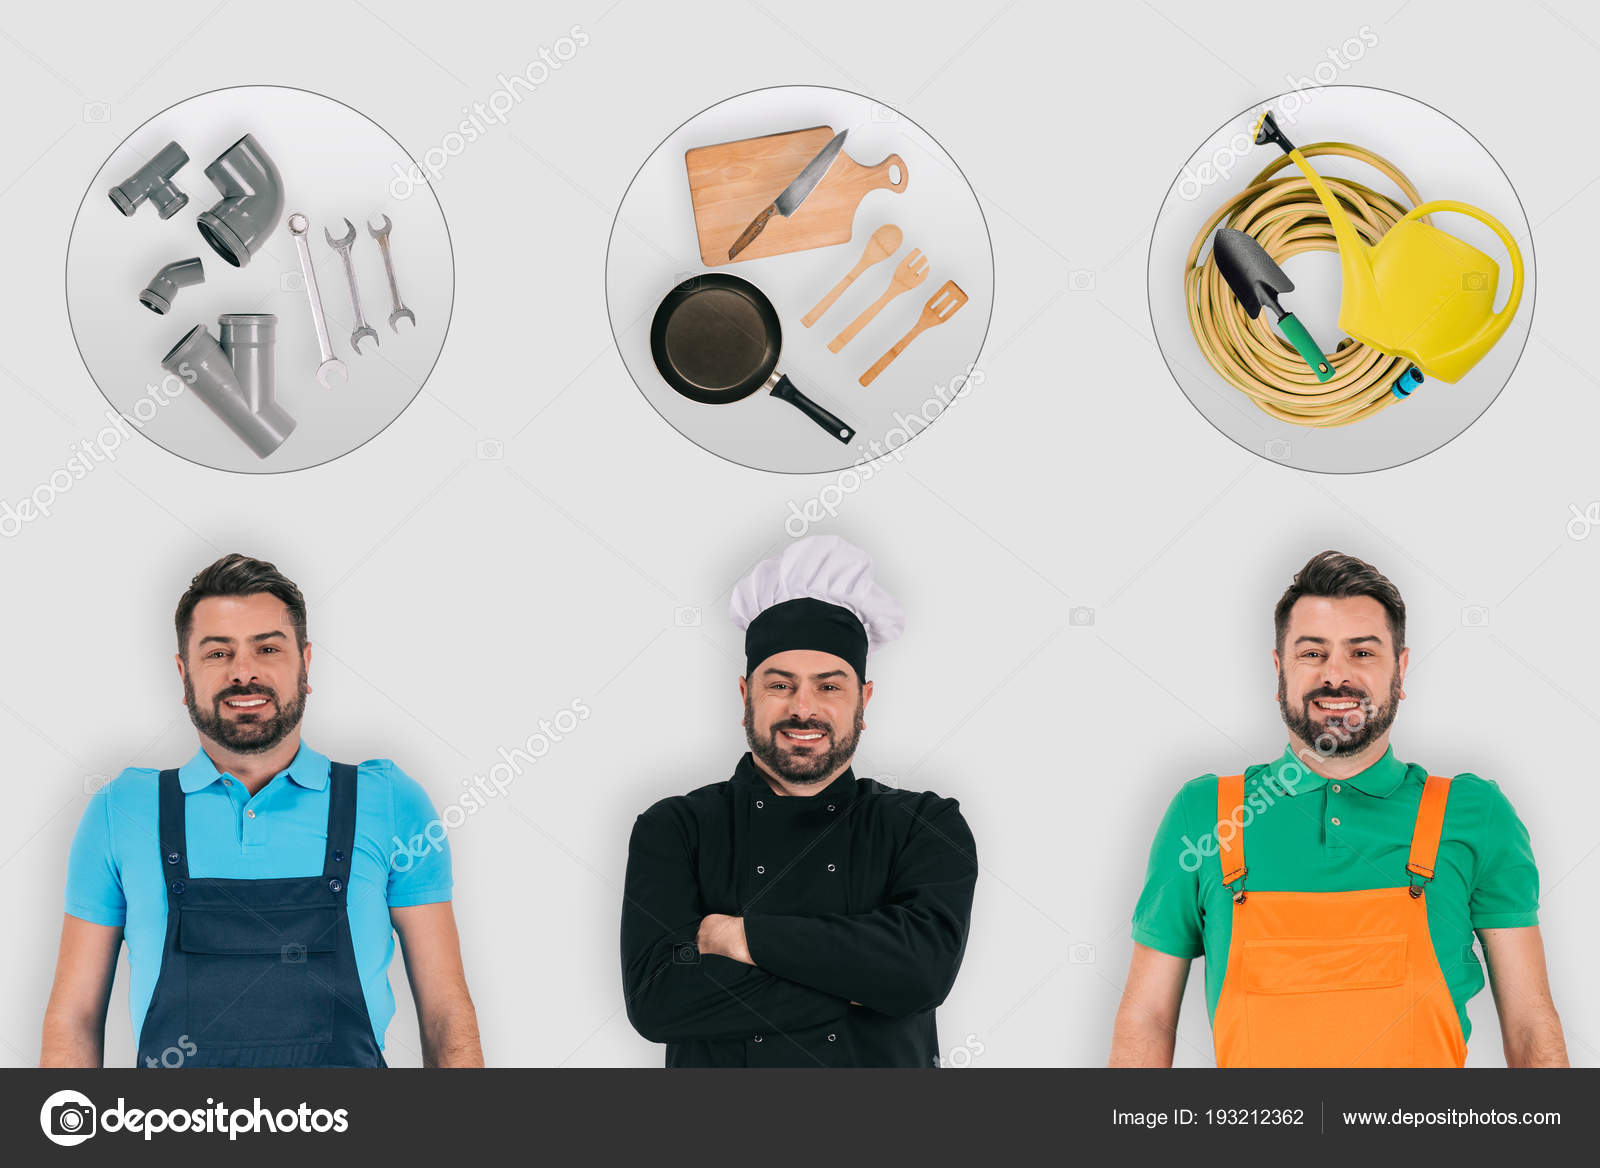 Plumber Chef Gardener Professional Equipment Occupations Concept